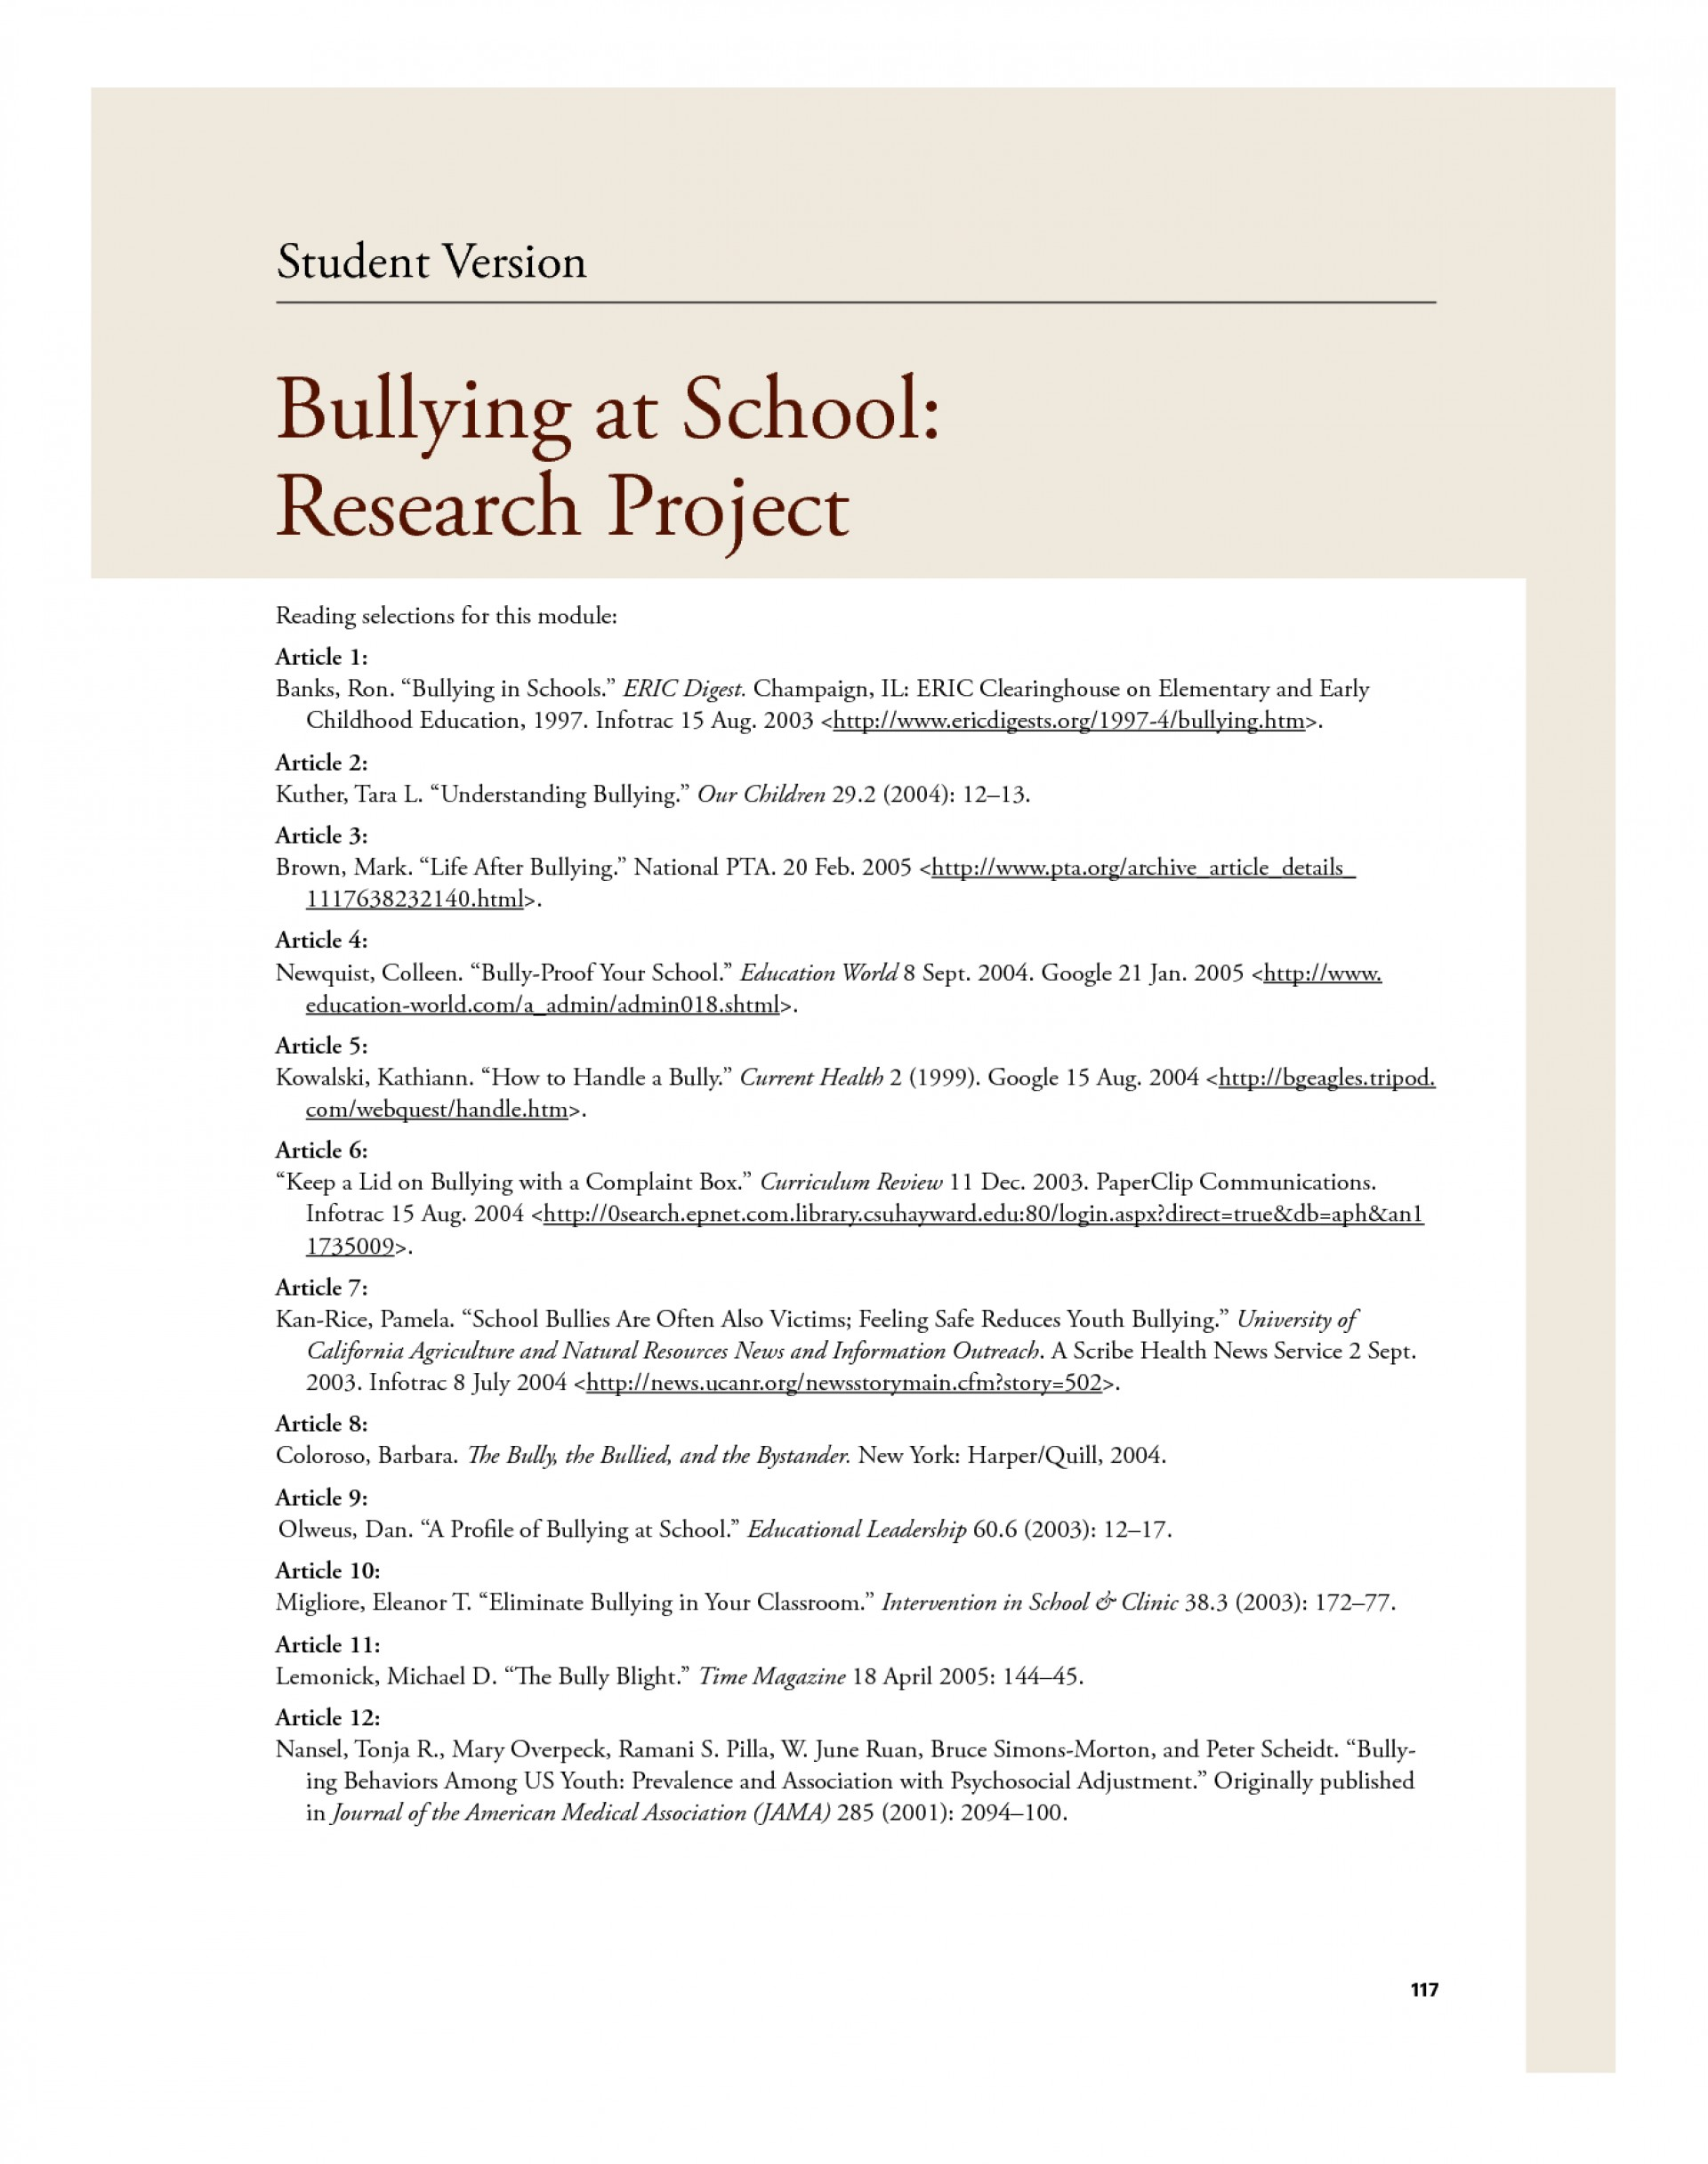 008 Essay On Bullying Essays In School Effects Of The Main Ways To Stop Bvj88 How Avoid At Prevent Spm Deal With High Schools Amazing Cause And Effect Cyberbullying 1920